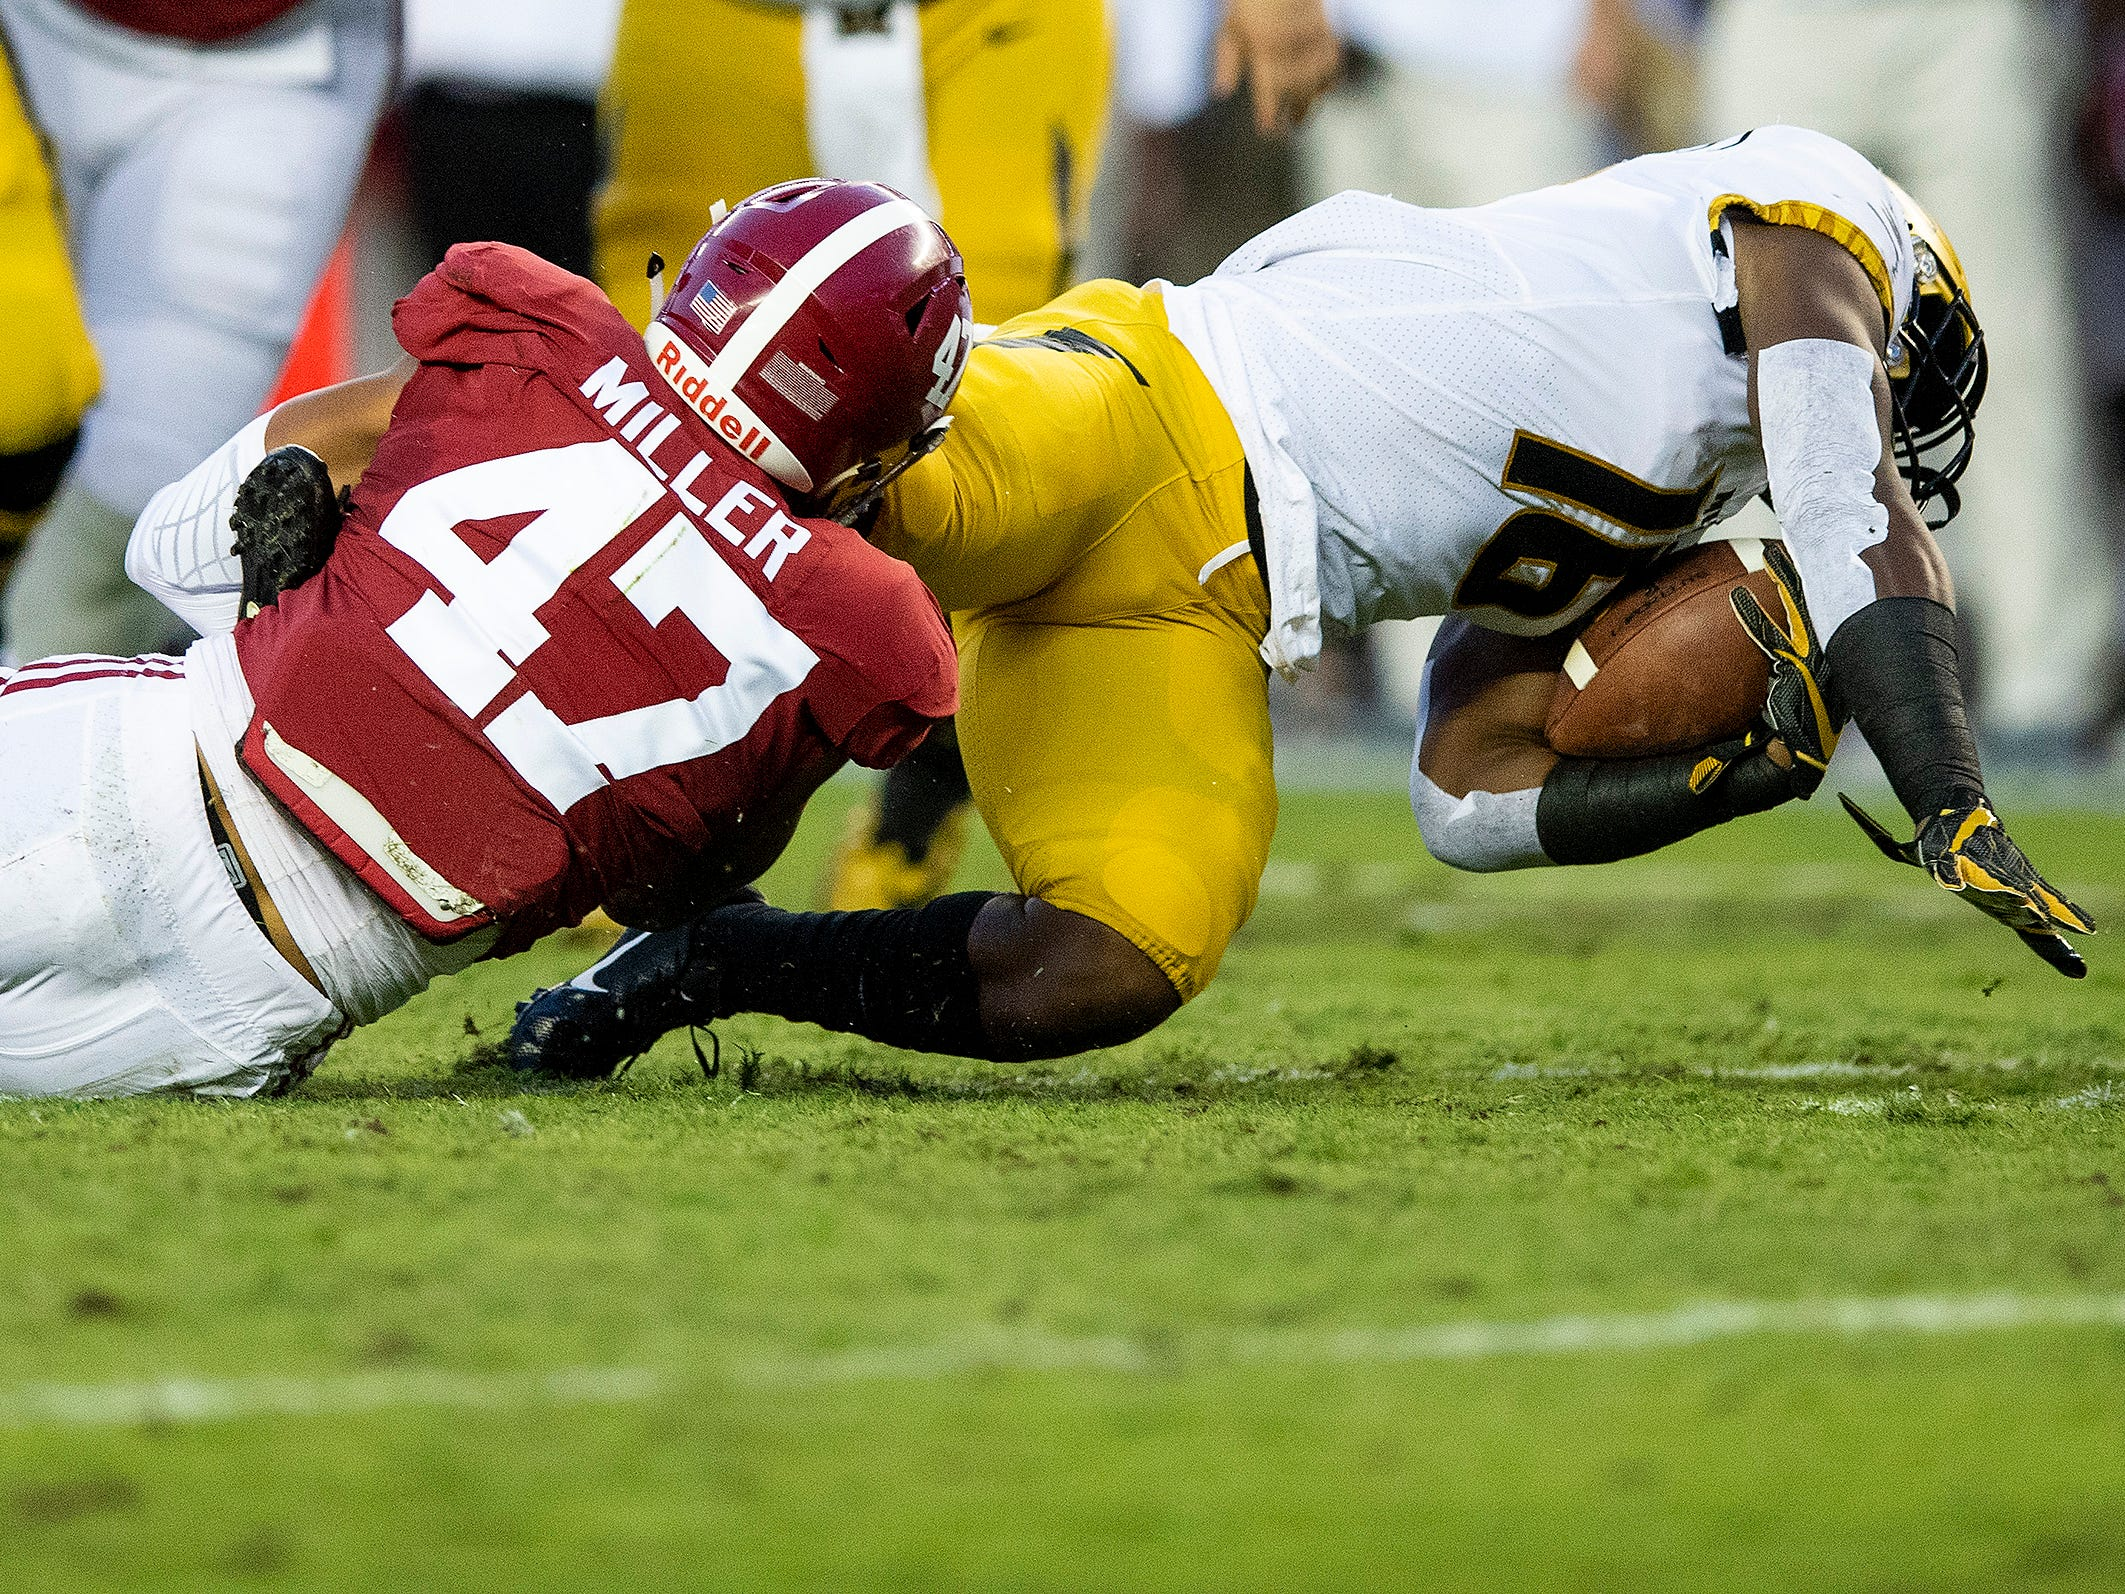 Alabama linebacker Christian Miller (47) tackles Missouri running back Damarea Crockett (16) in first half action at Bryant Denny Stadium in Tuscaloosa, Ala., on Saturday October 13, 2018.